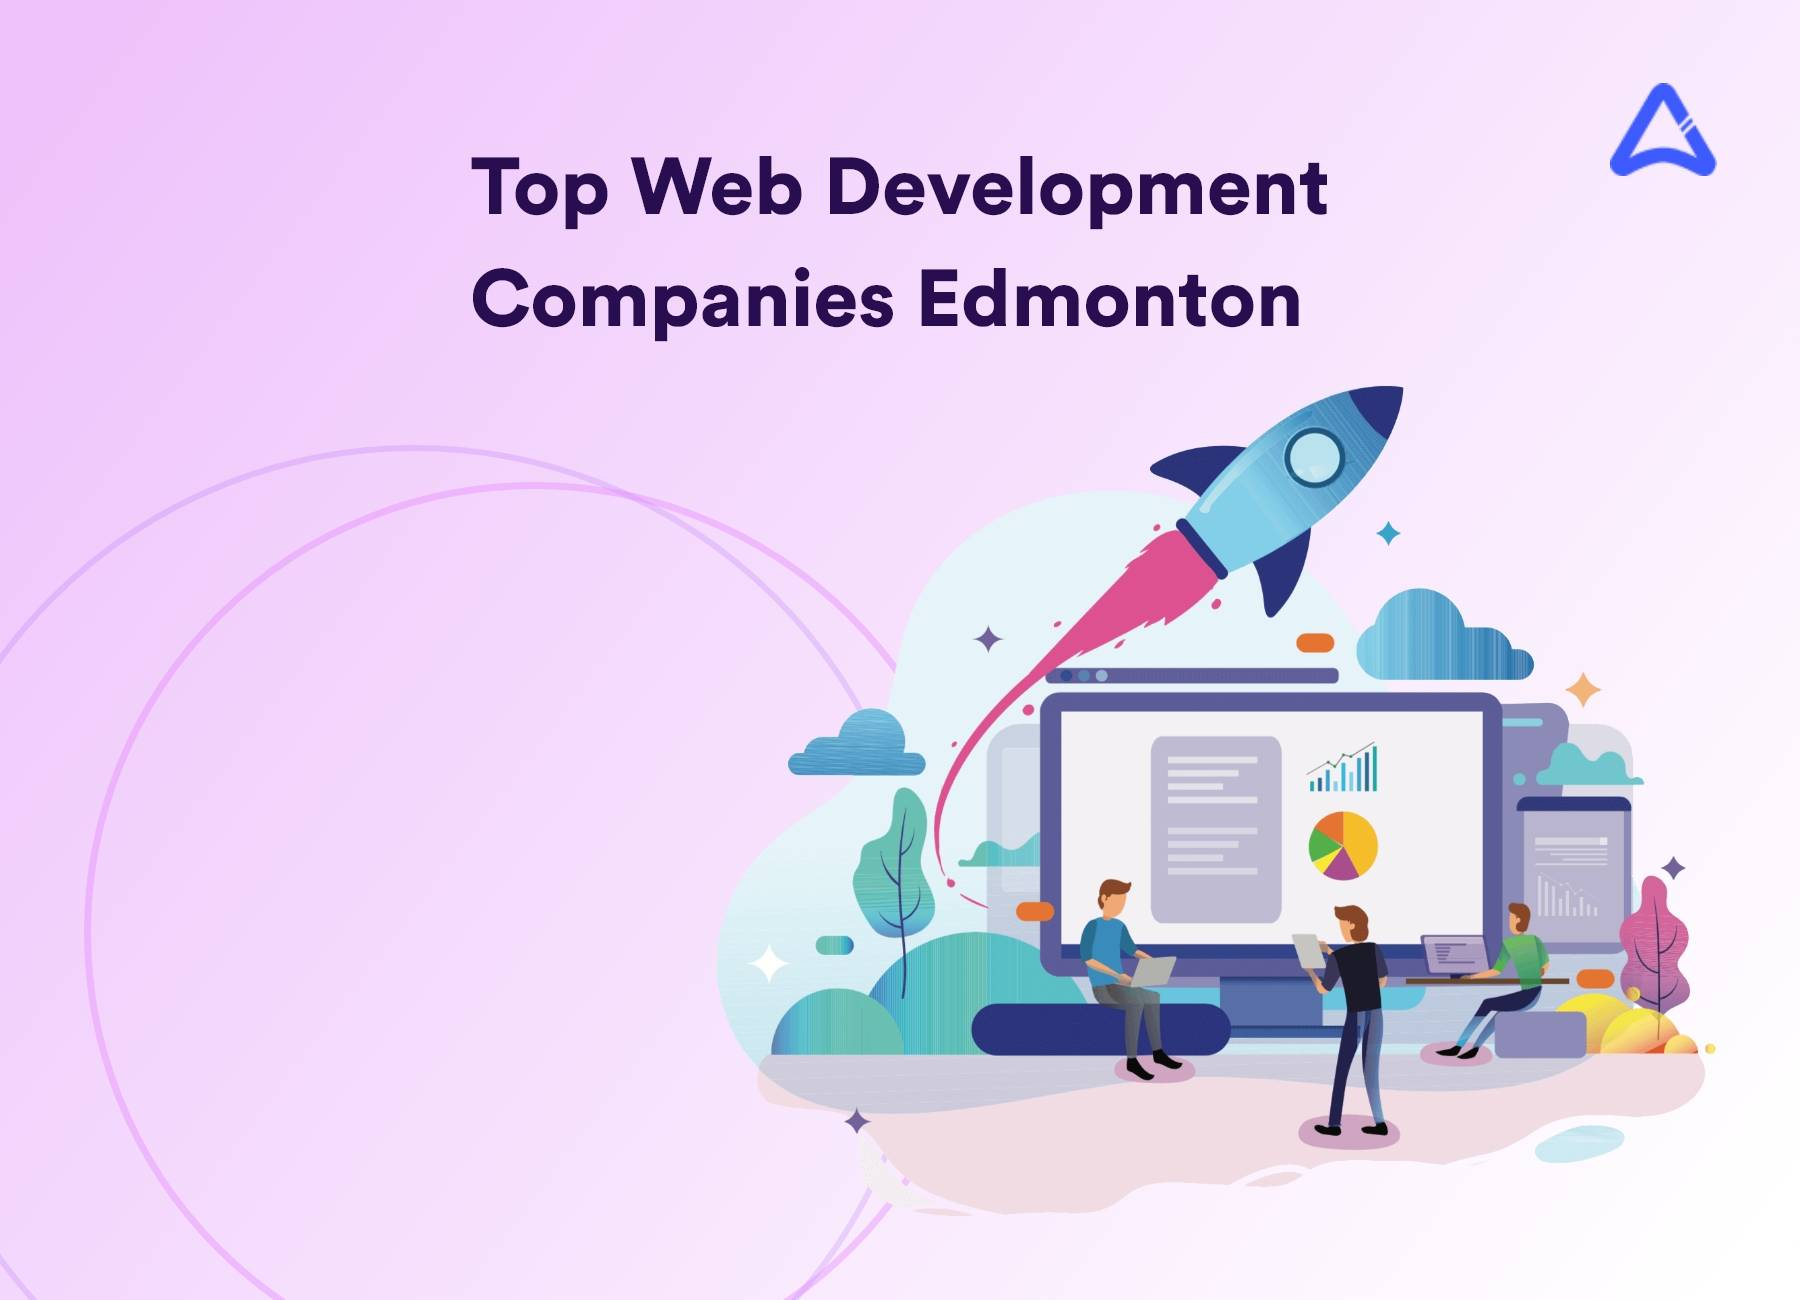 Web Development Companies in Edmonton